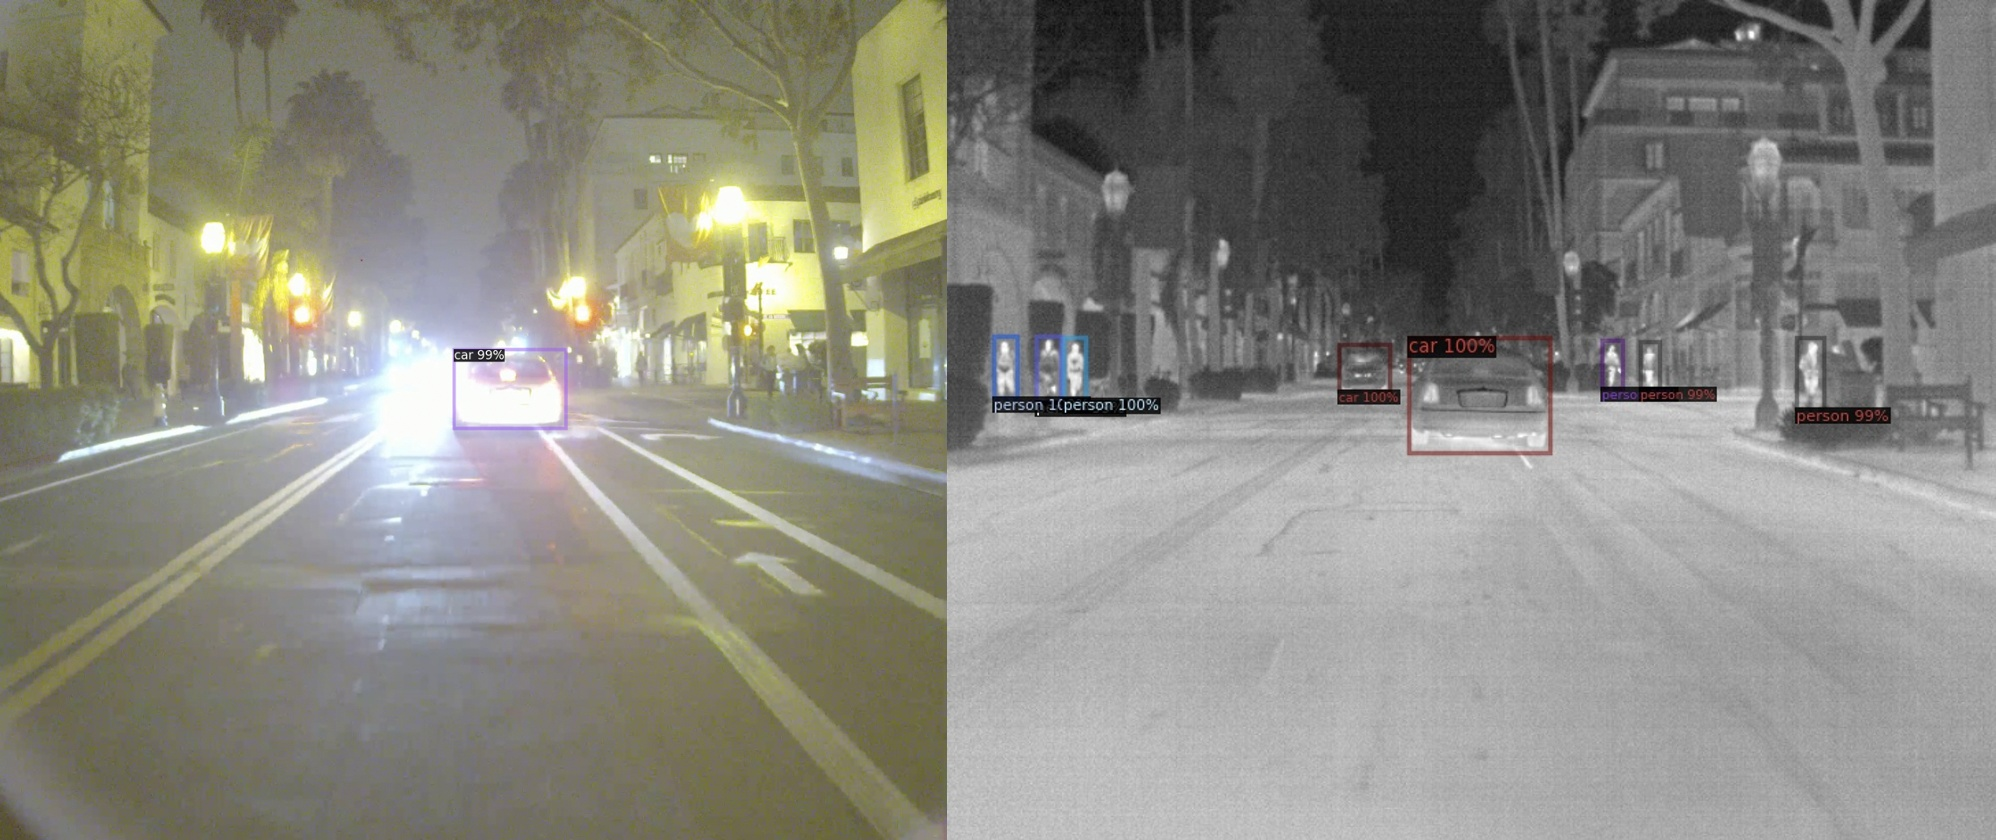 Object Detection in Infrared Images